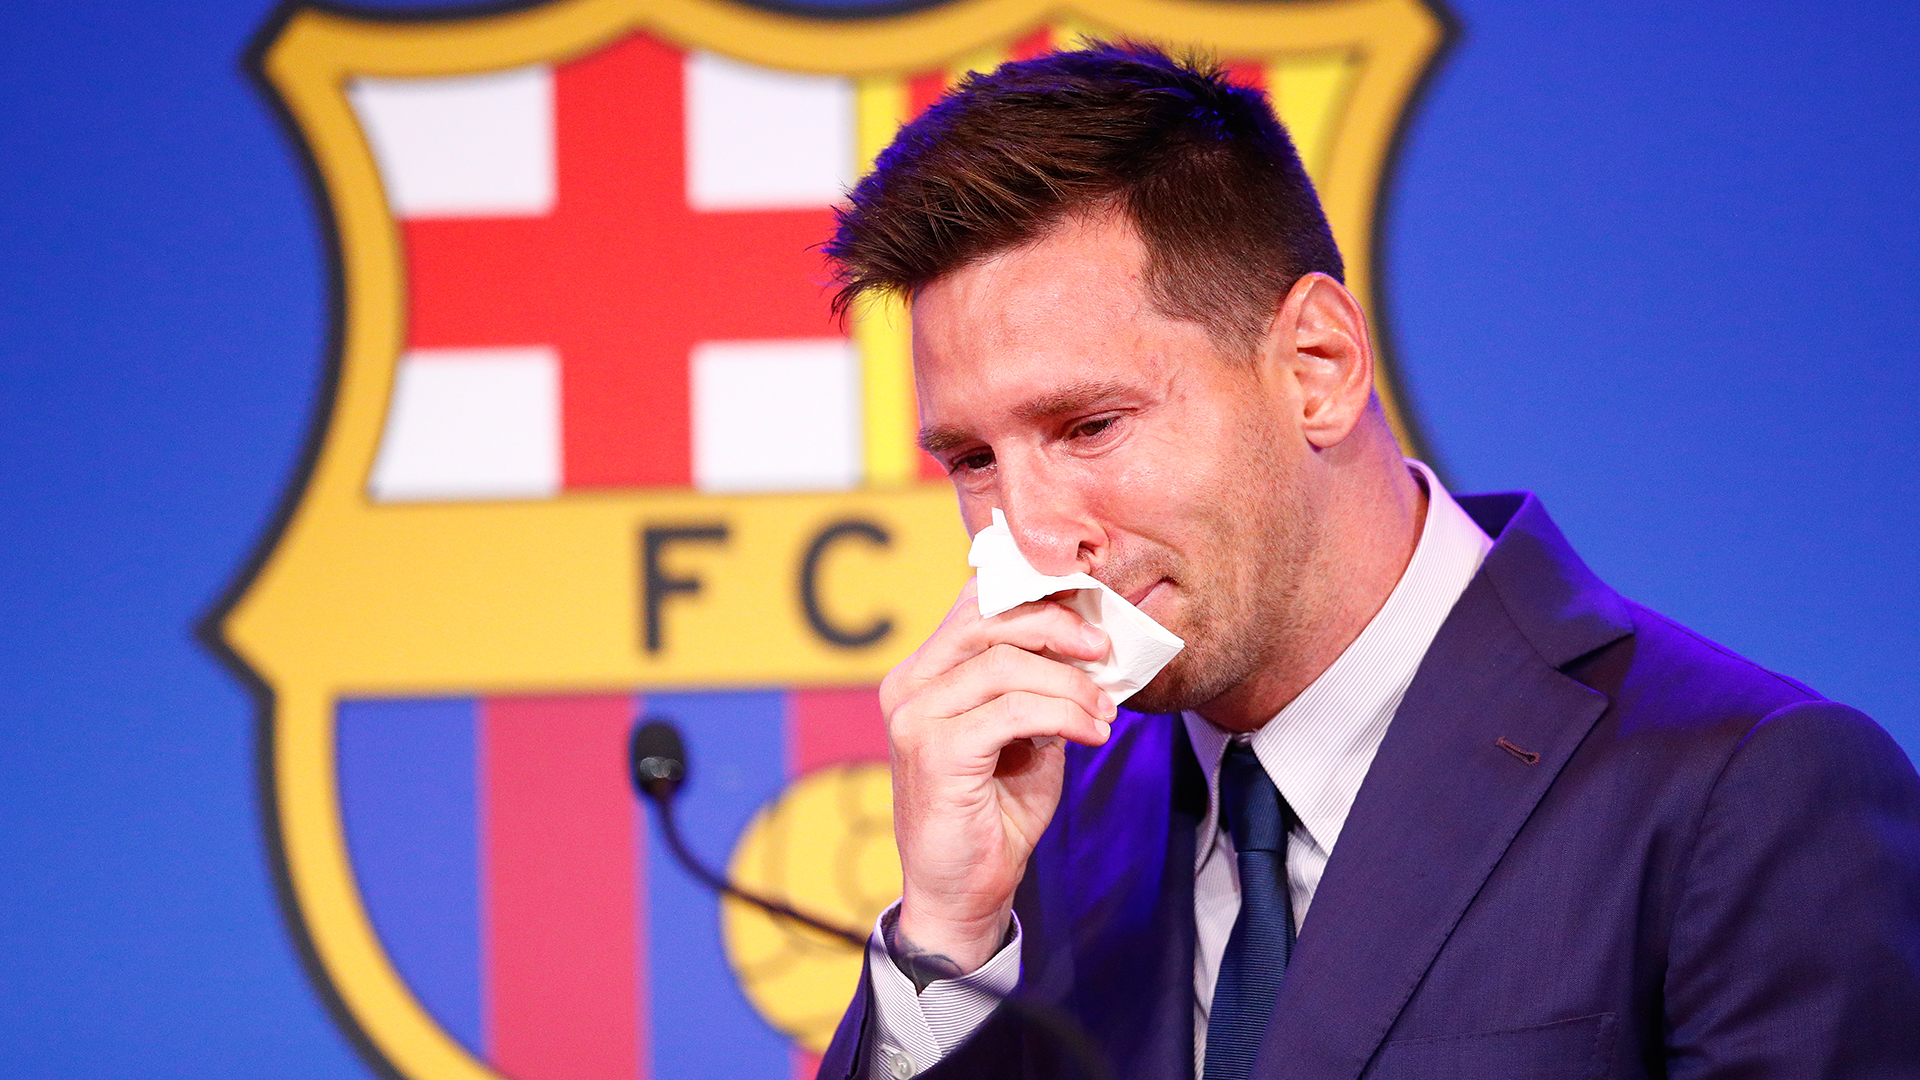 'You're greedy & not the only one' - Saleh slams ex-Barcelona star Messi over 'crocodile tears'